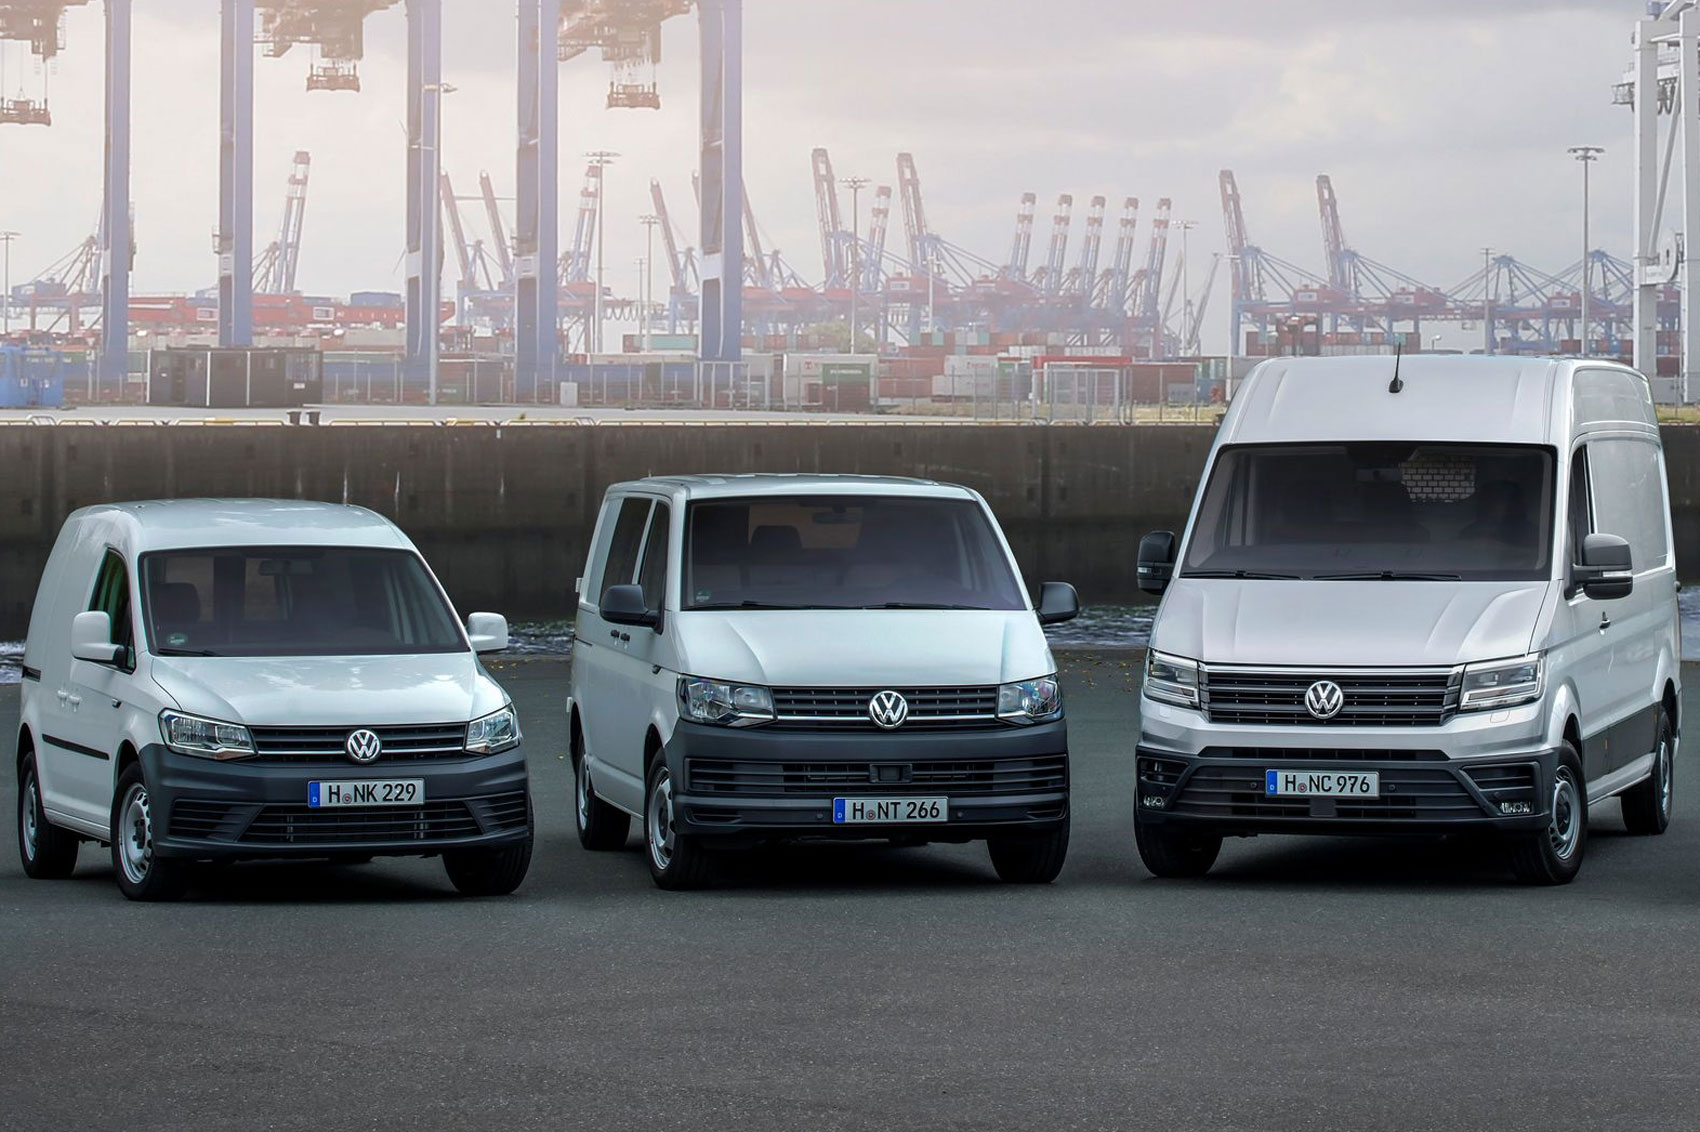 New Vw Vans Scrappage Scheme Trade In An Old Banger To